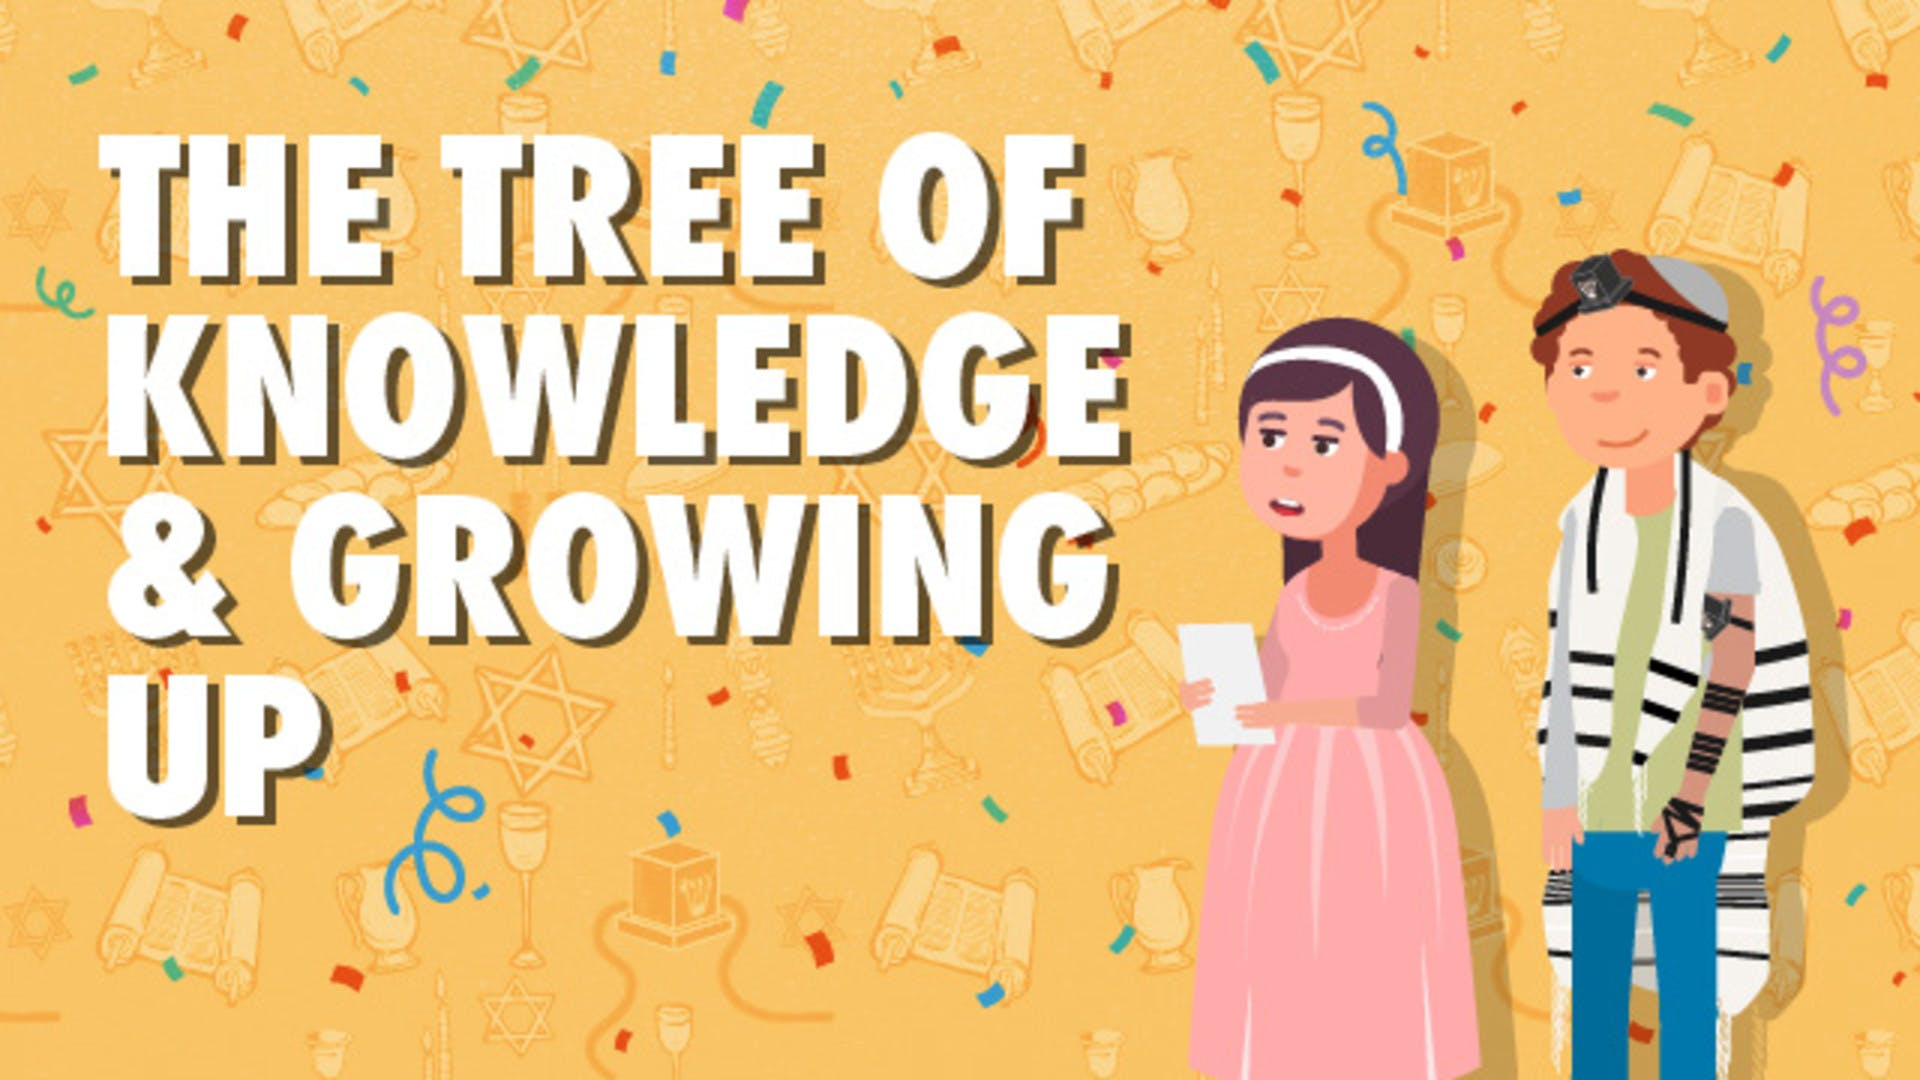 The Tree of Knowledge and Growing Up